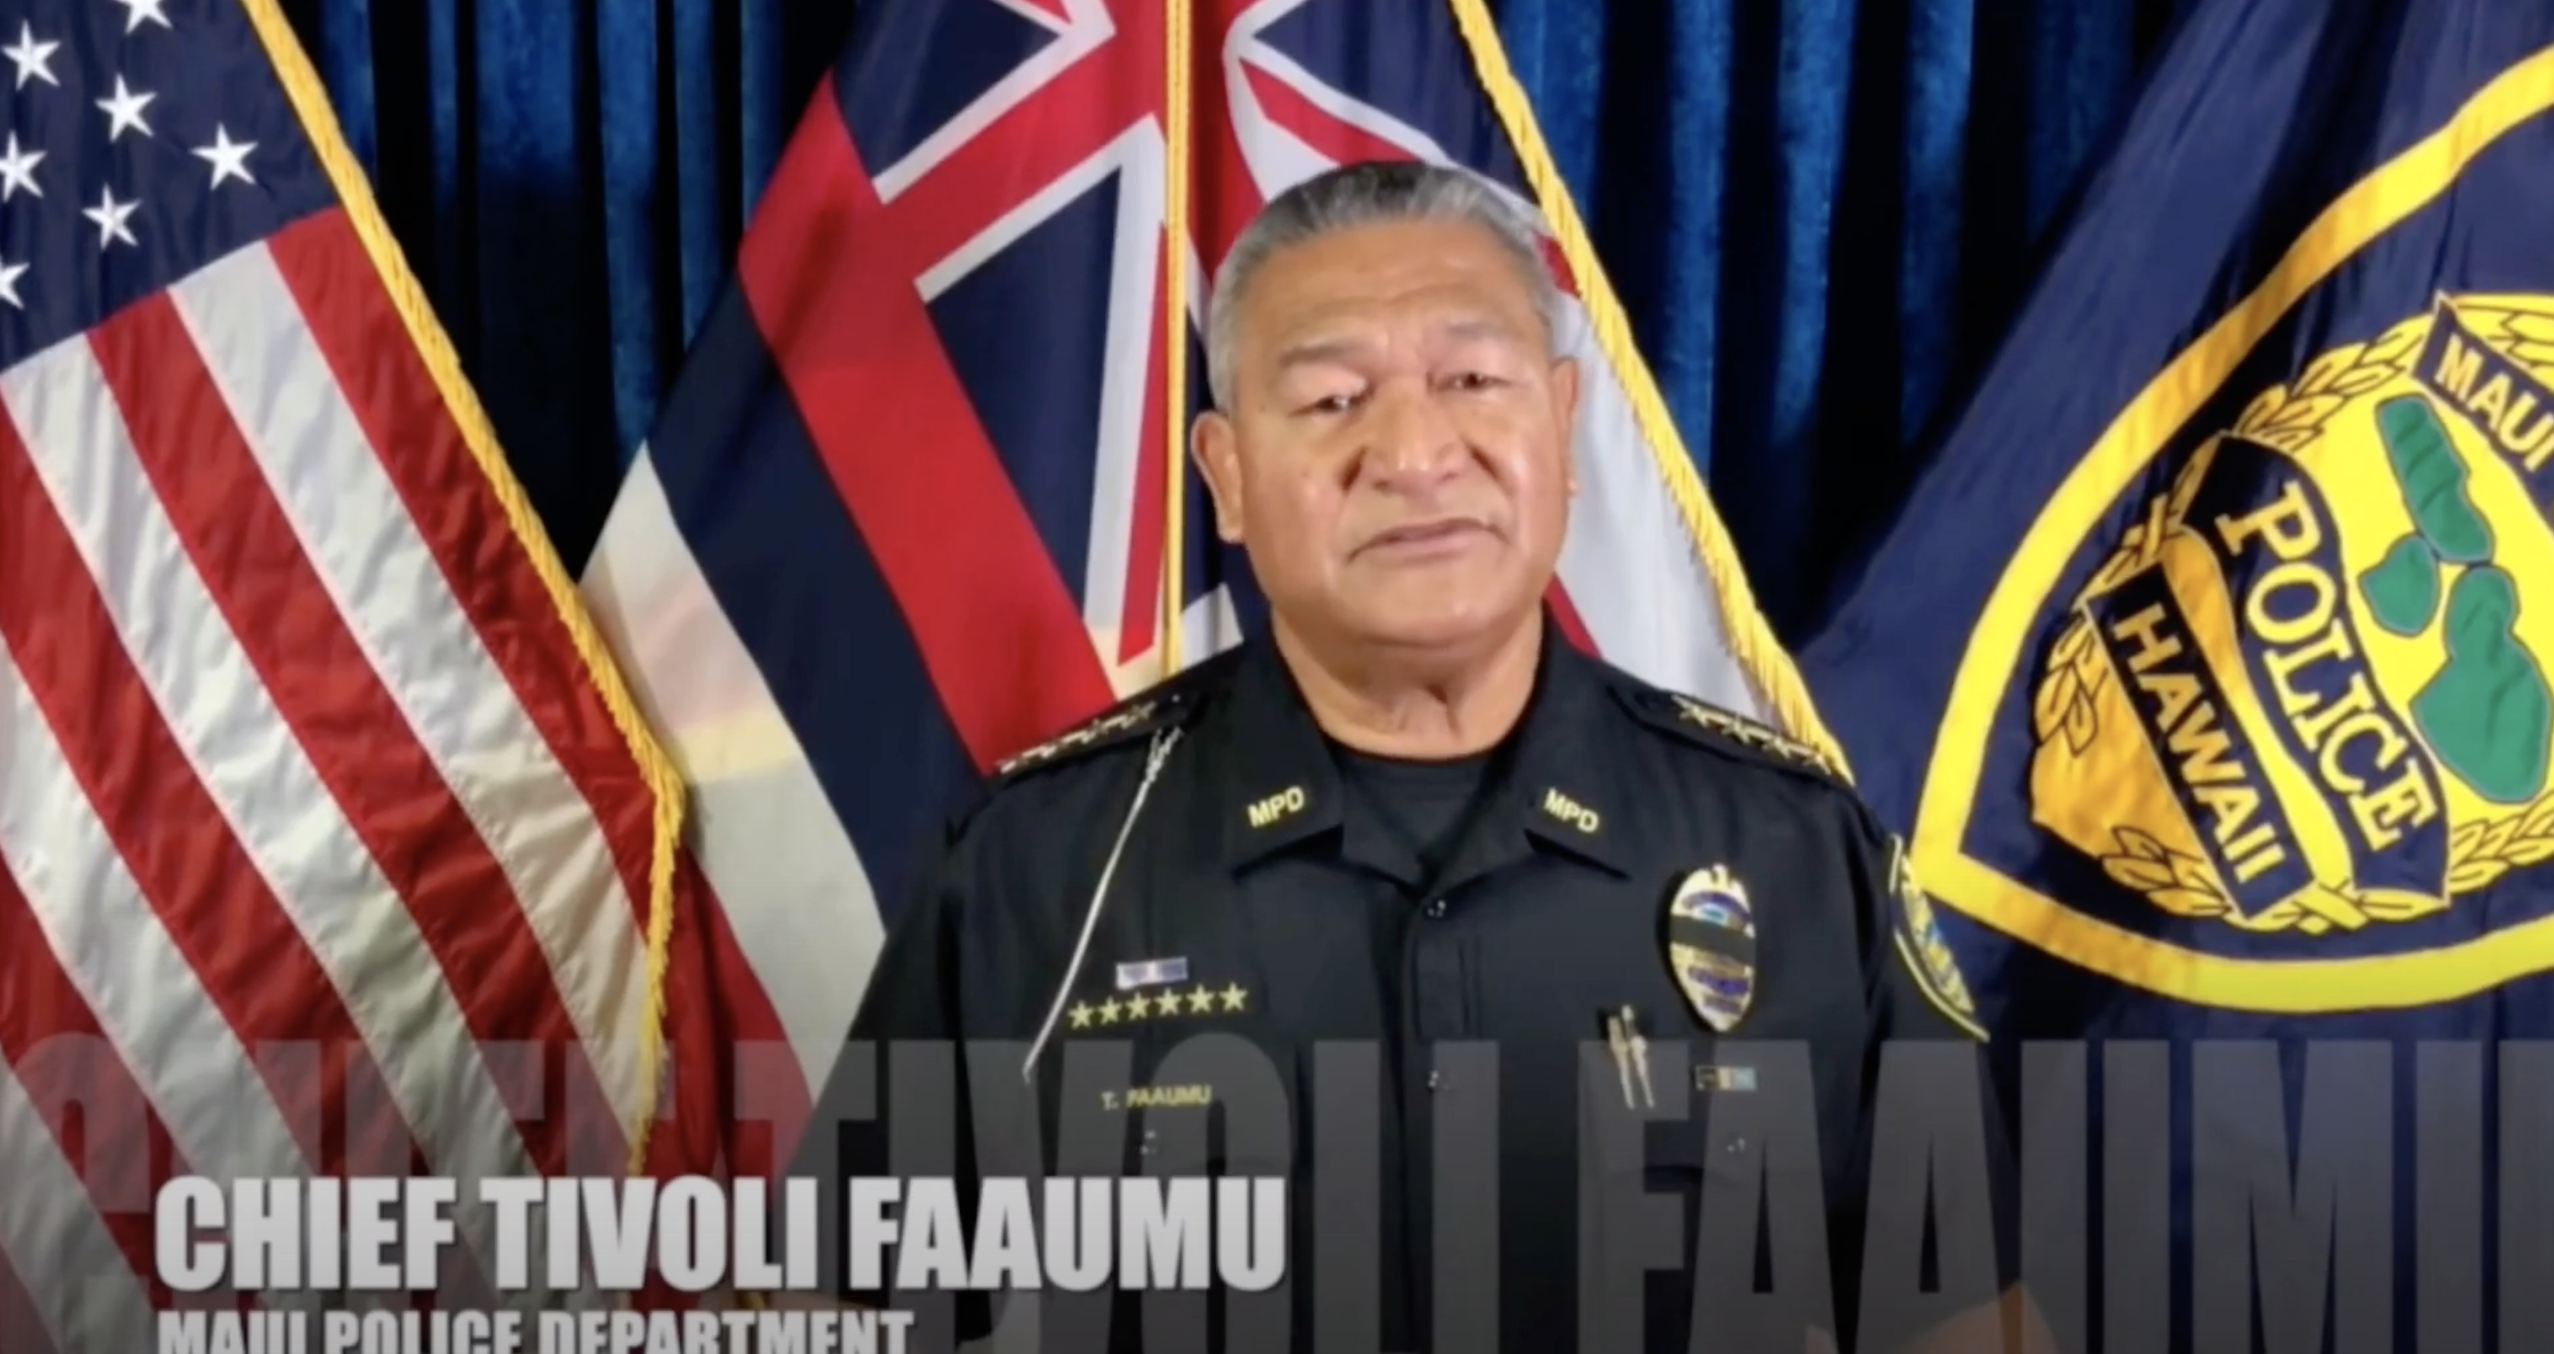 Maui Police Chief Issues Crisis Support Video Message